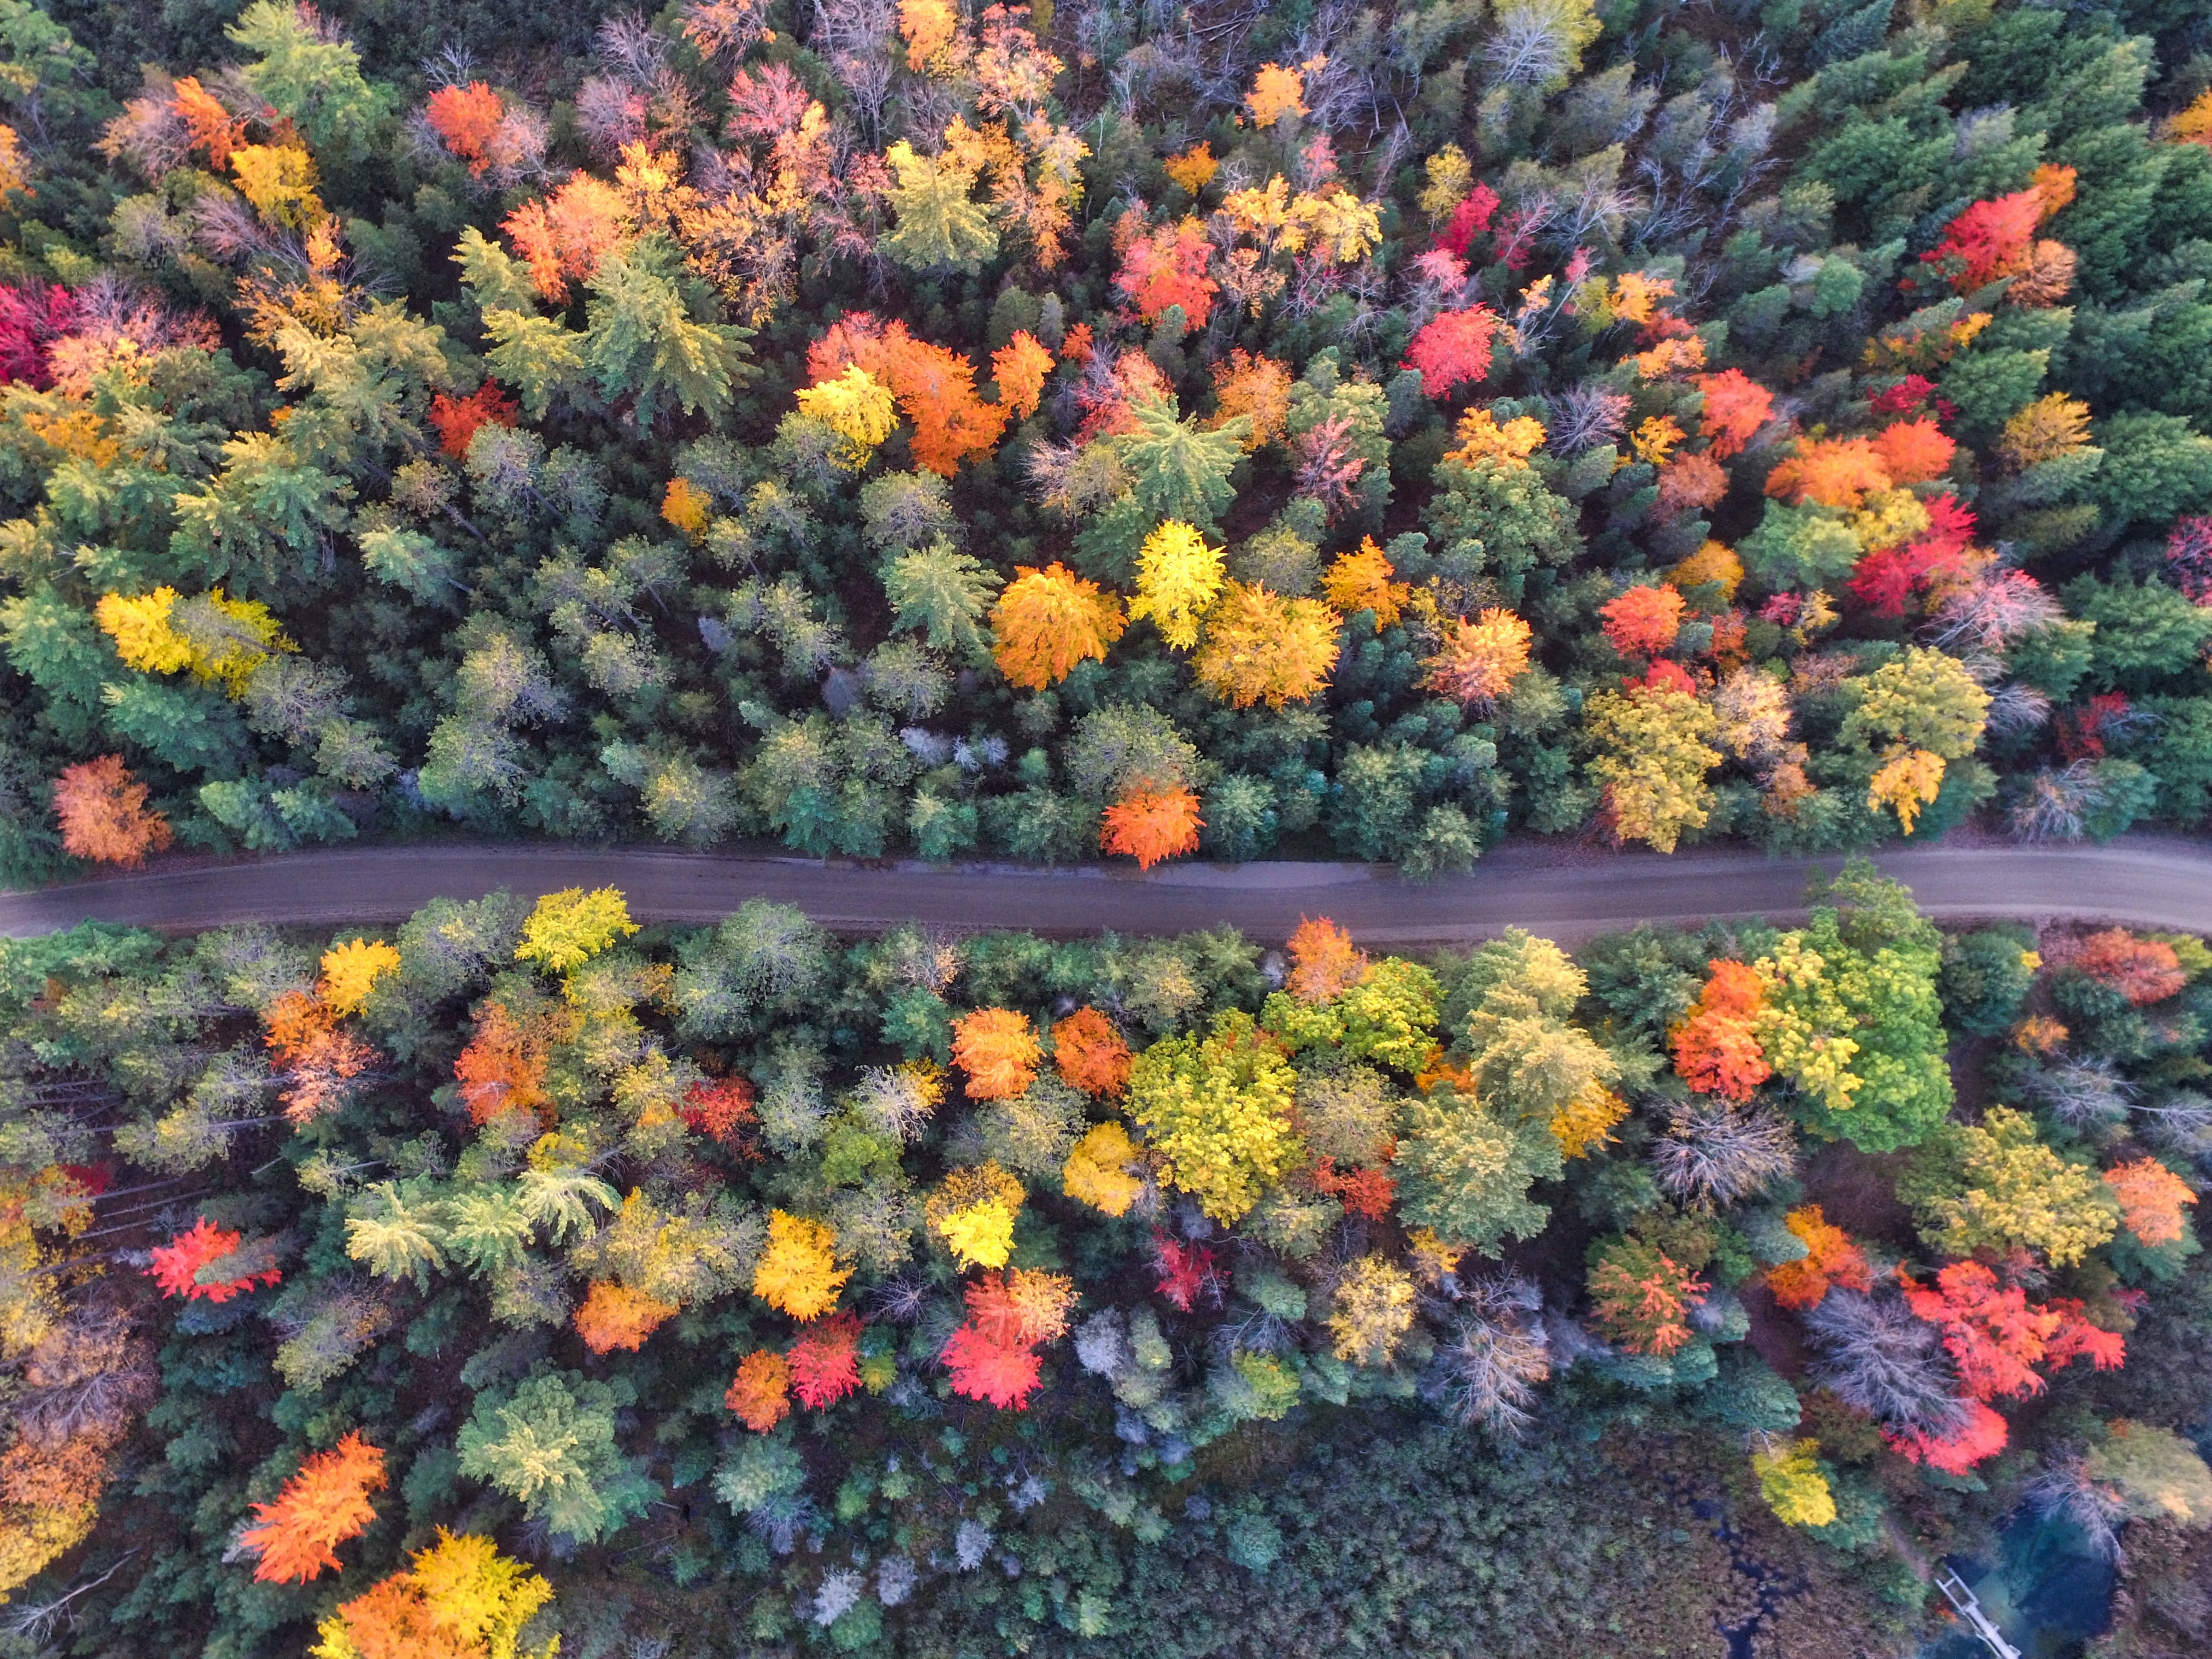 A drone view of the trees changing colors during Autumn in Grayling, Michigan, United States